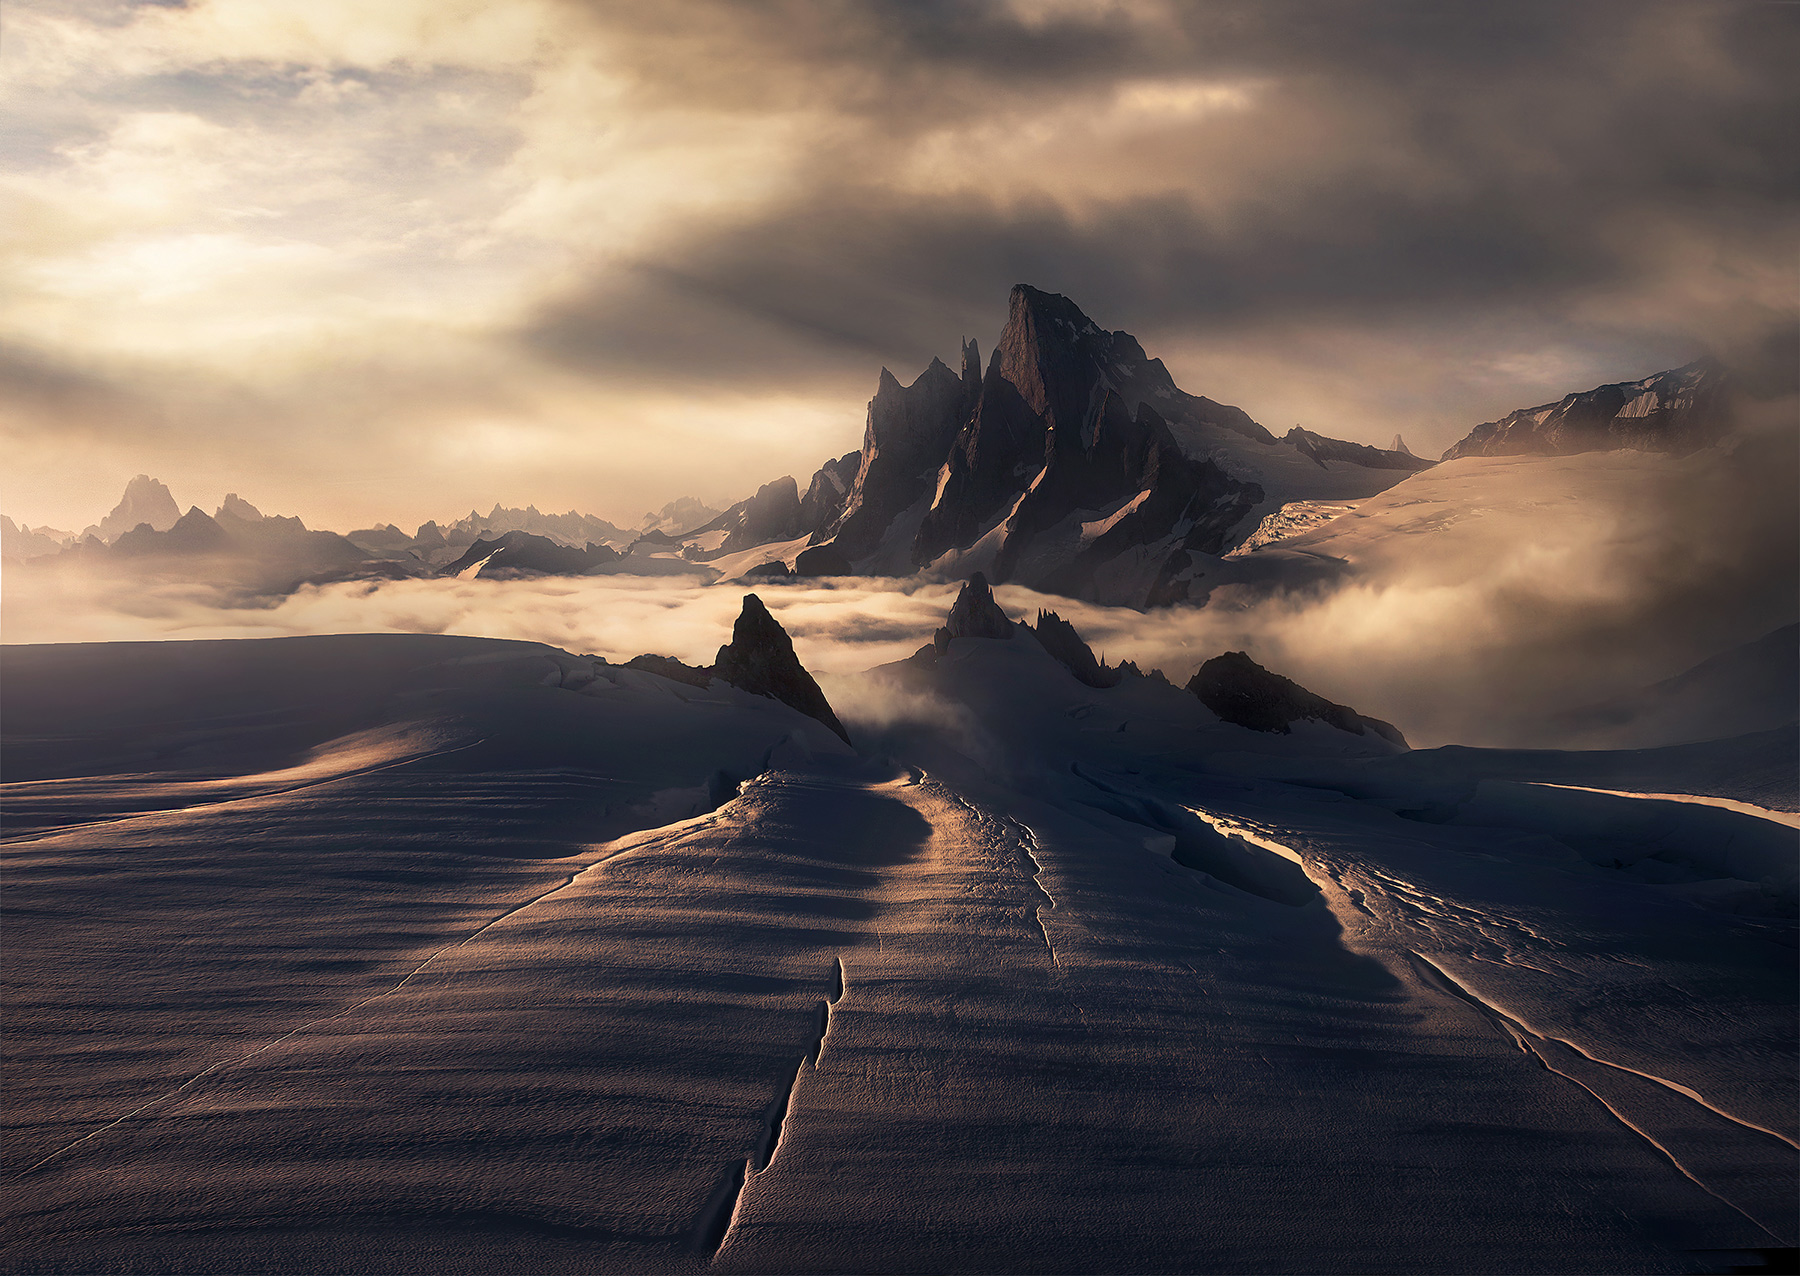 Devils thumb, Alaska, petersburg, glacier, crevasses, mountains, peak,  sunset, photo